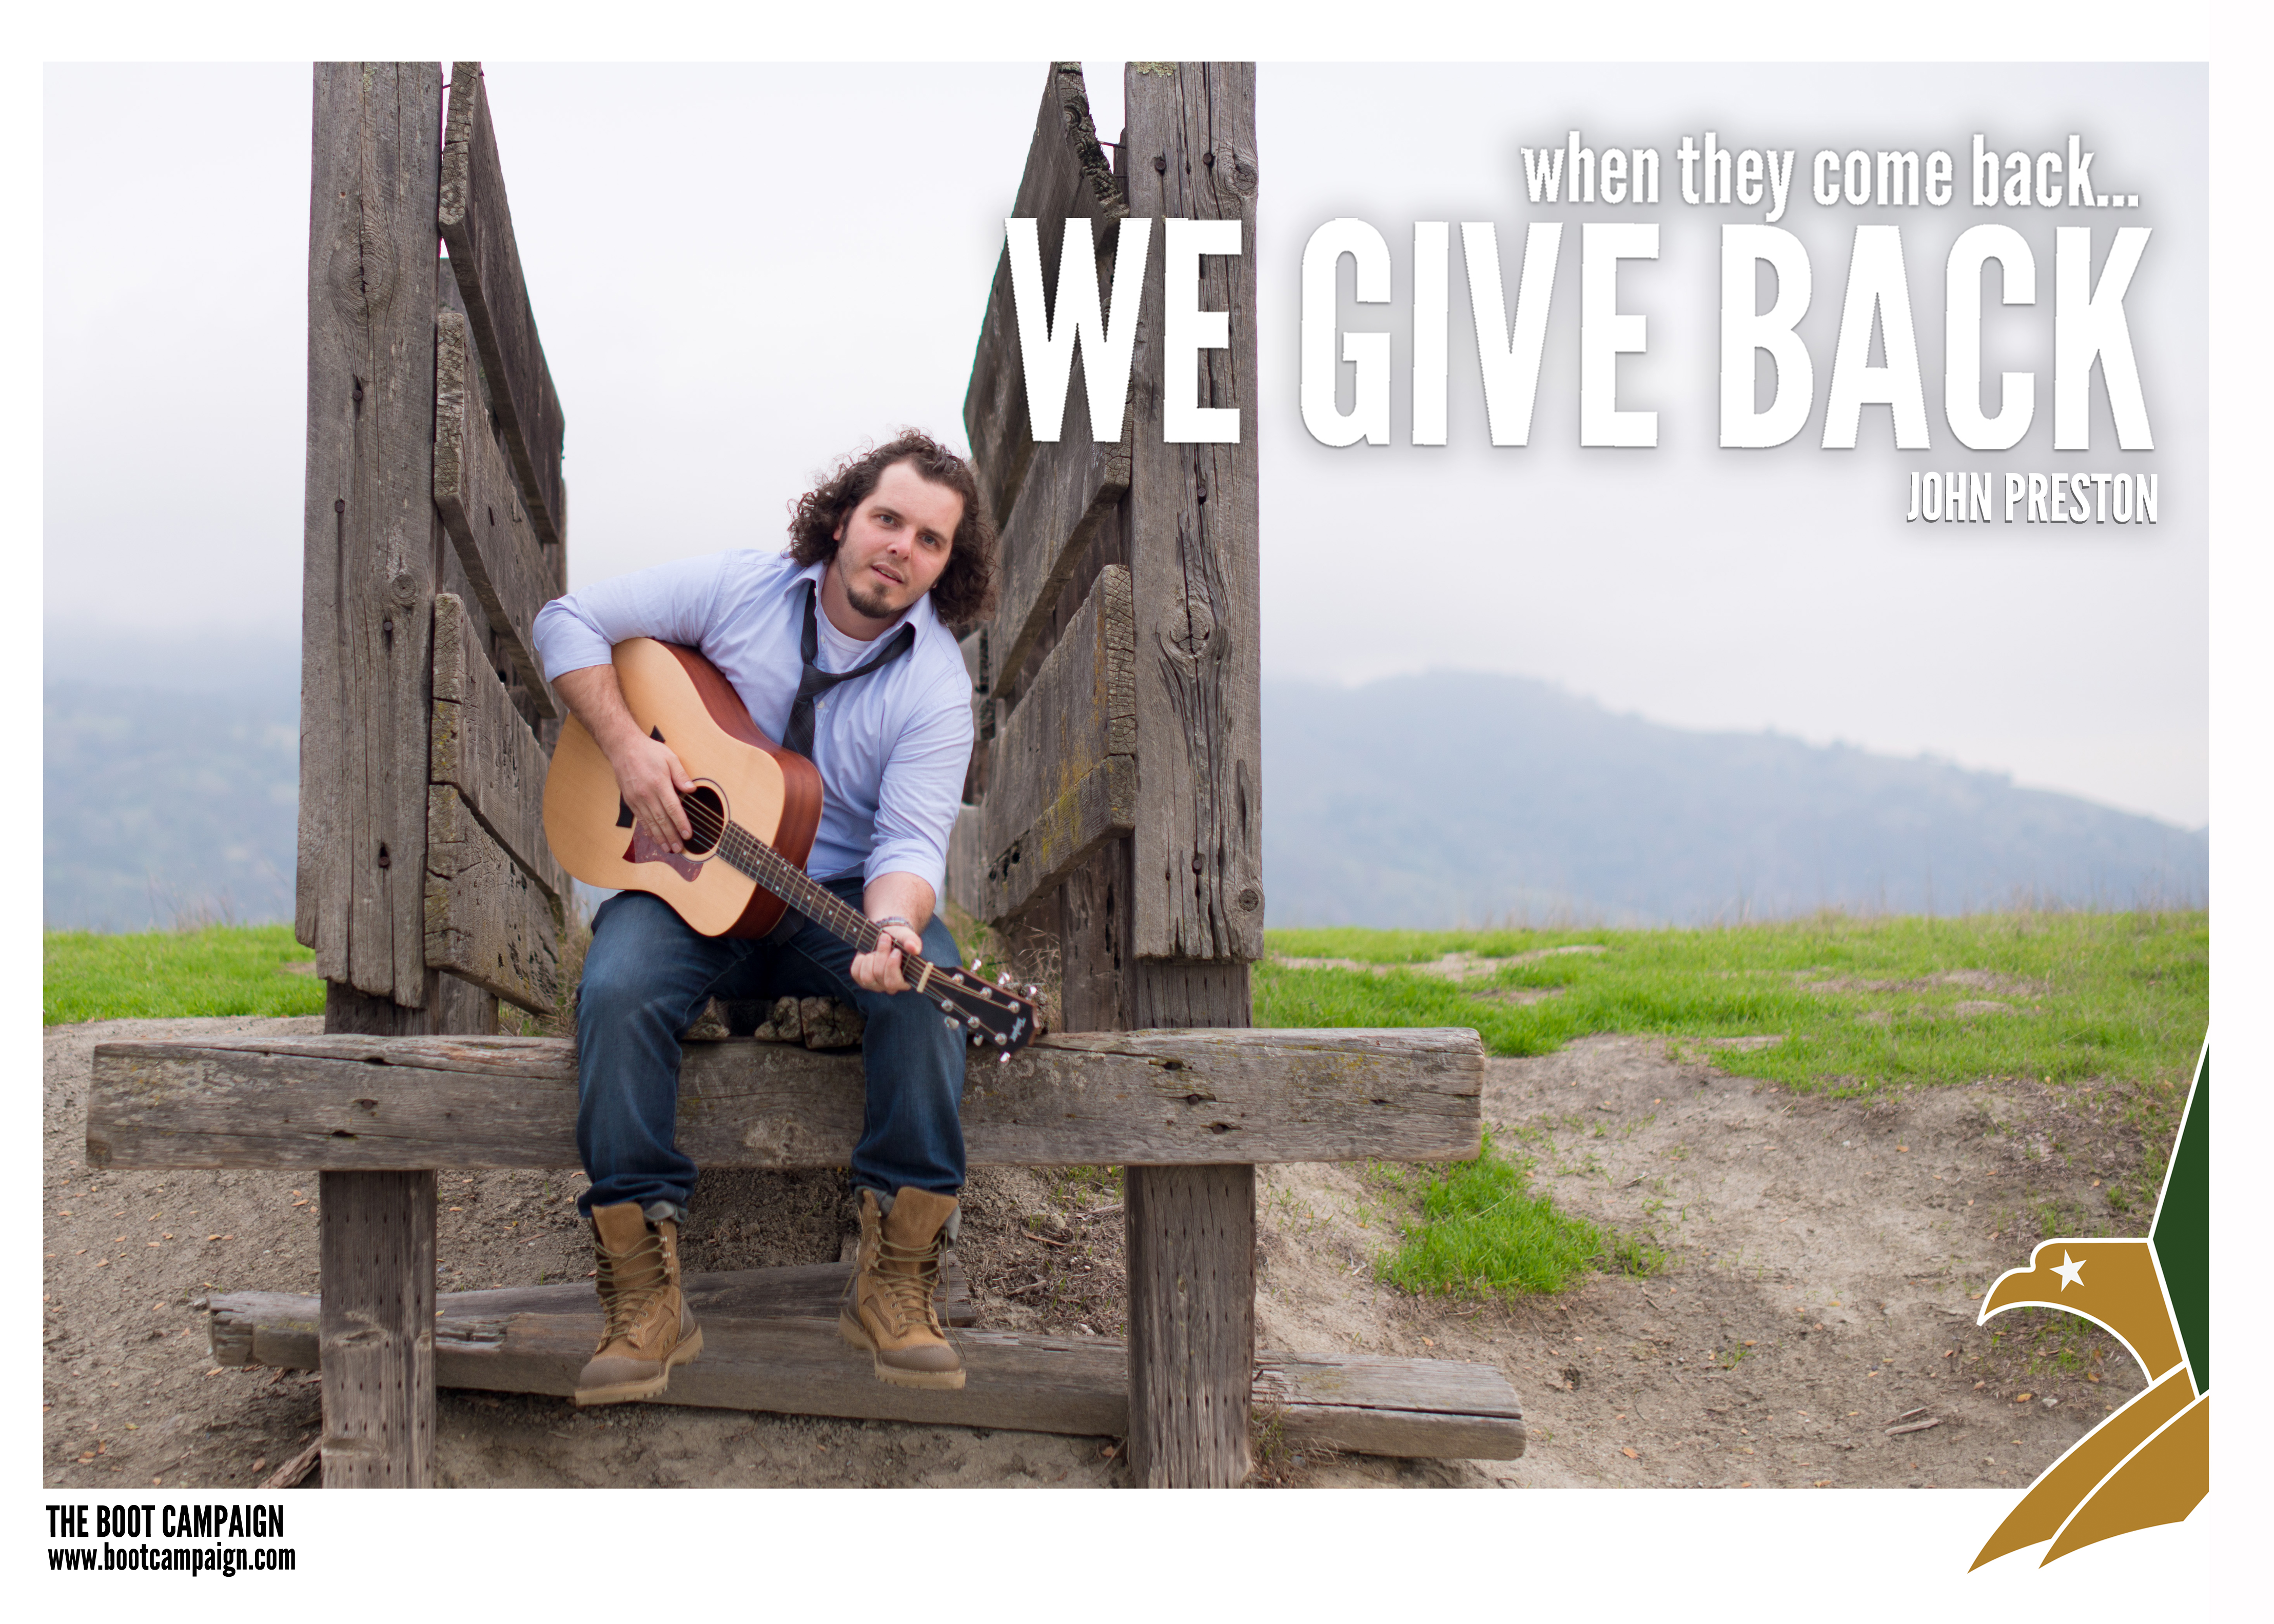 IRAQI VETERAN SAVES LIVES THROUGH SONG - Boot Campaign